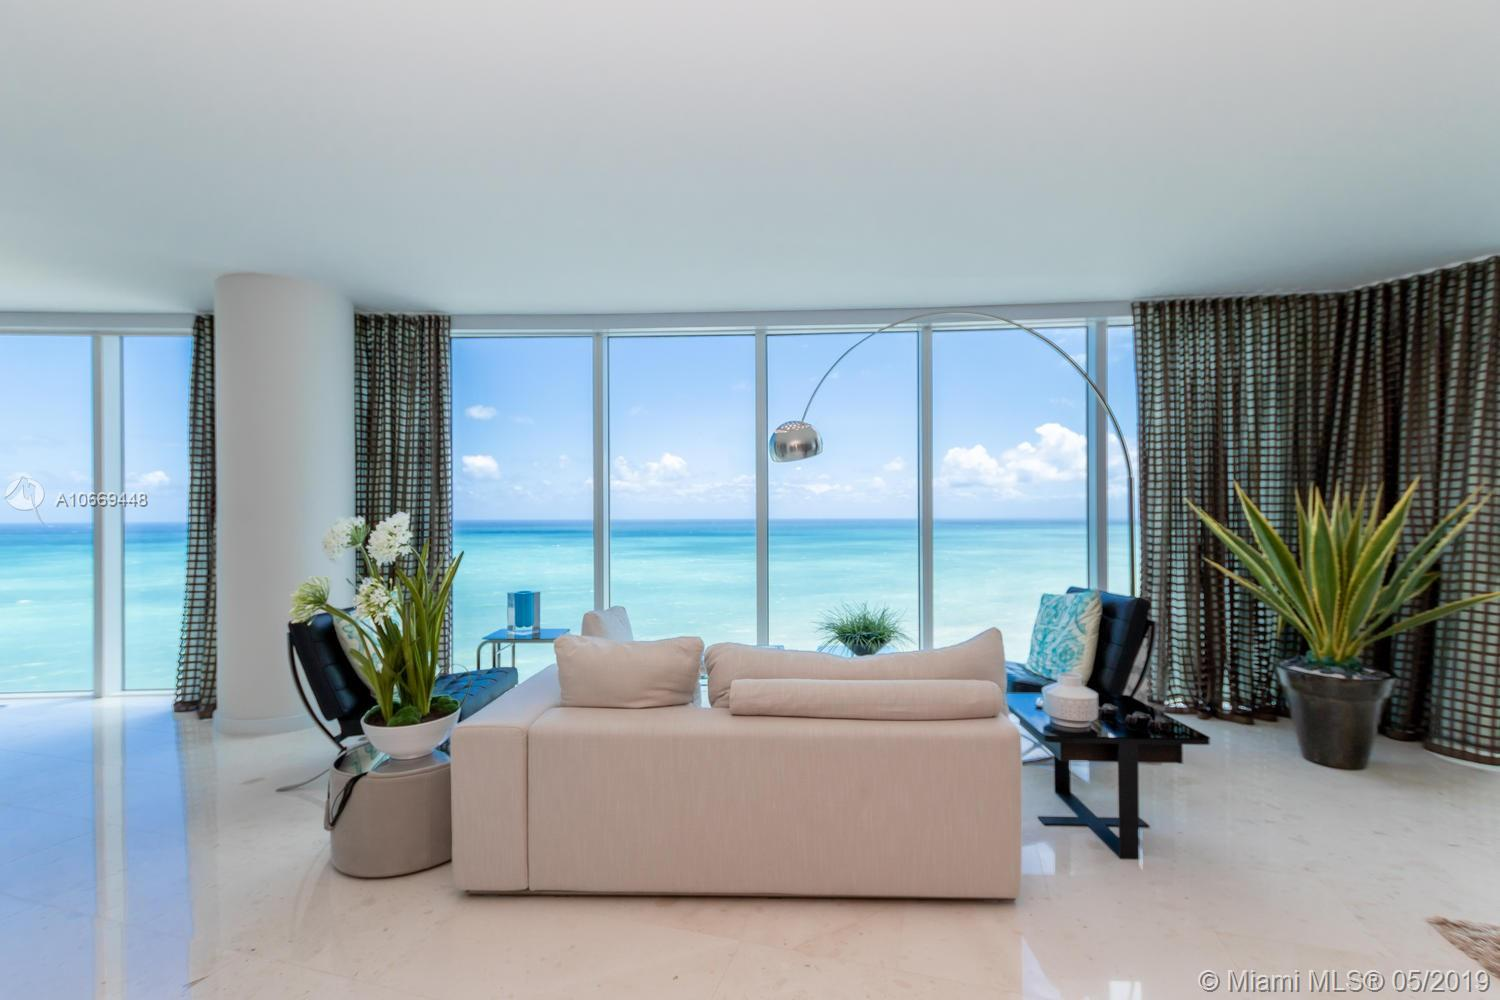 No doubt Trump Hollywood new condos at Hollywood Beach, Florida is modern and most attractive properties with a marvelous view. The building was built in 2012 by Related Group, that is famous for its well-recognized properties in South Florida, and it has a direct beachfront location. Moreover, you'll also find a business center, fitness center with SPA, tennis court and cabanas by the ocean side, as well as Ocean Drive aside, offers plenty of leisure and other activities. Here you'll find cable TV, high-speed Internet, and multiple phone lines, granite and marble kitchen countertops, stacked washer and dryer.Just bring your luggage to move in! Completely furnished, stunning views from every corner!!Buyer motivate!! Accept trade in a smaller unit in the same bldg! SHOWING CALL AGENT